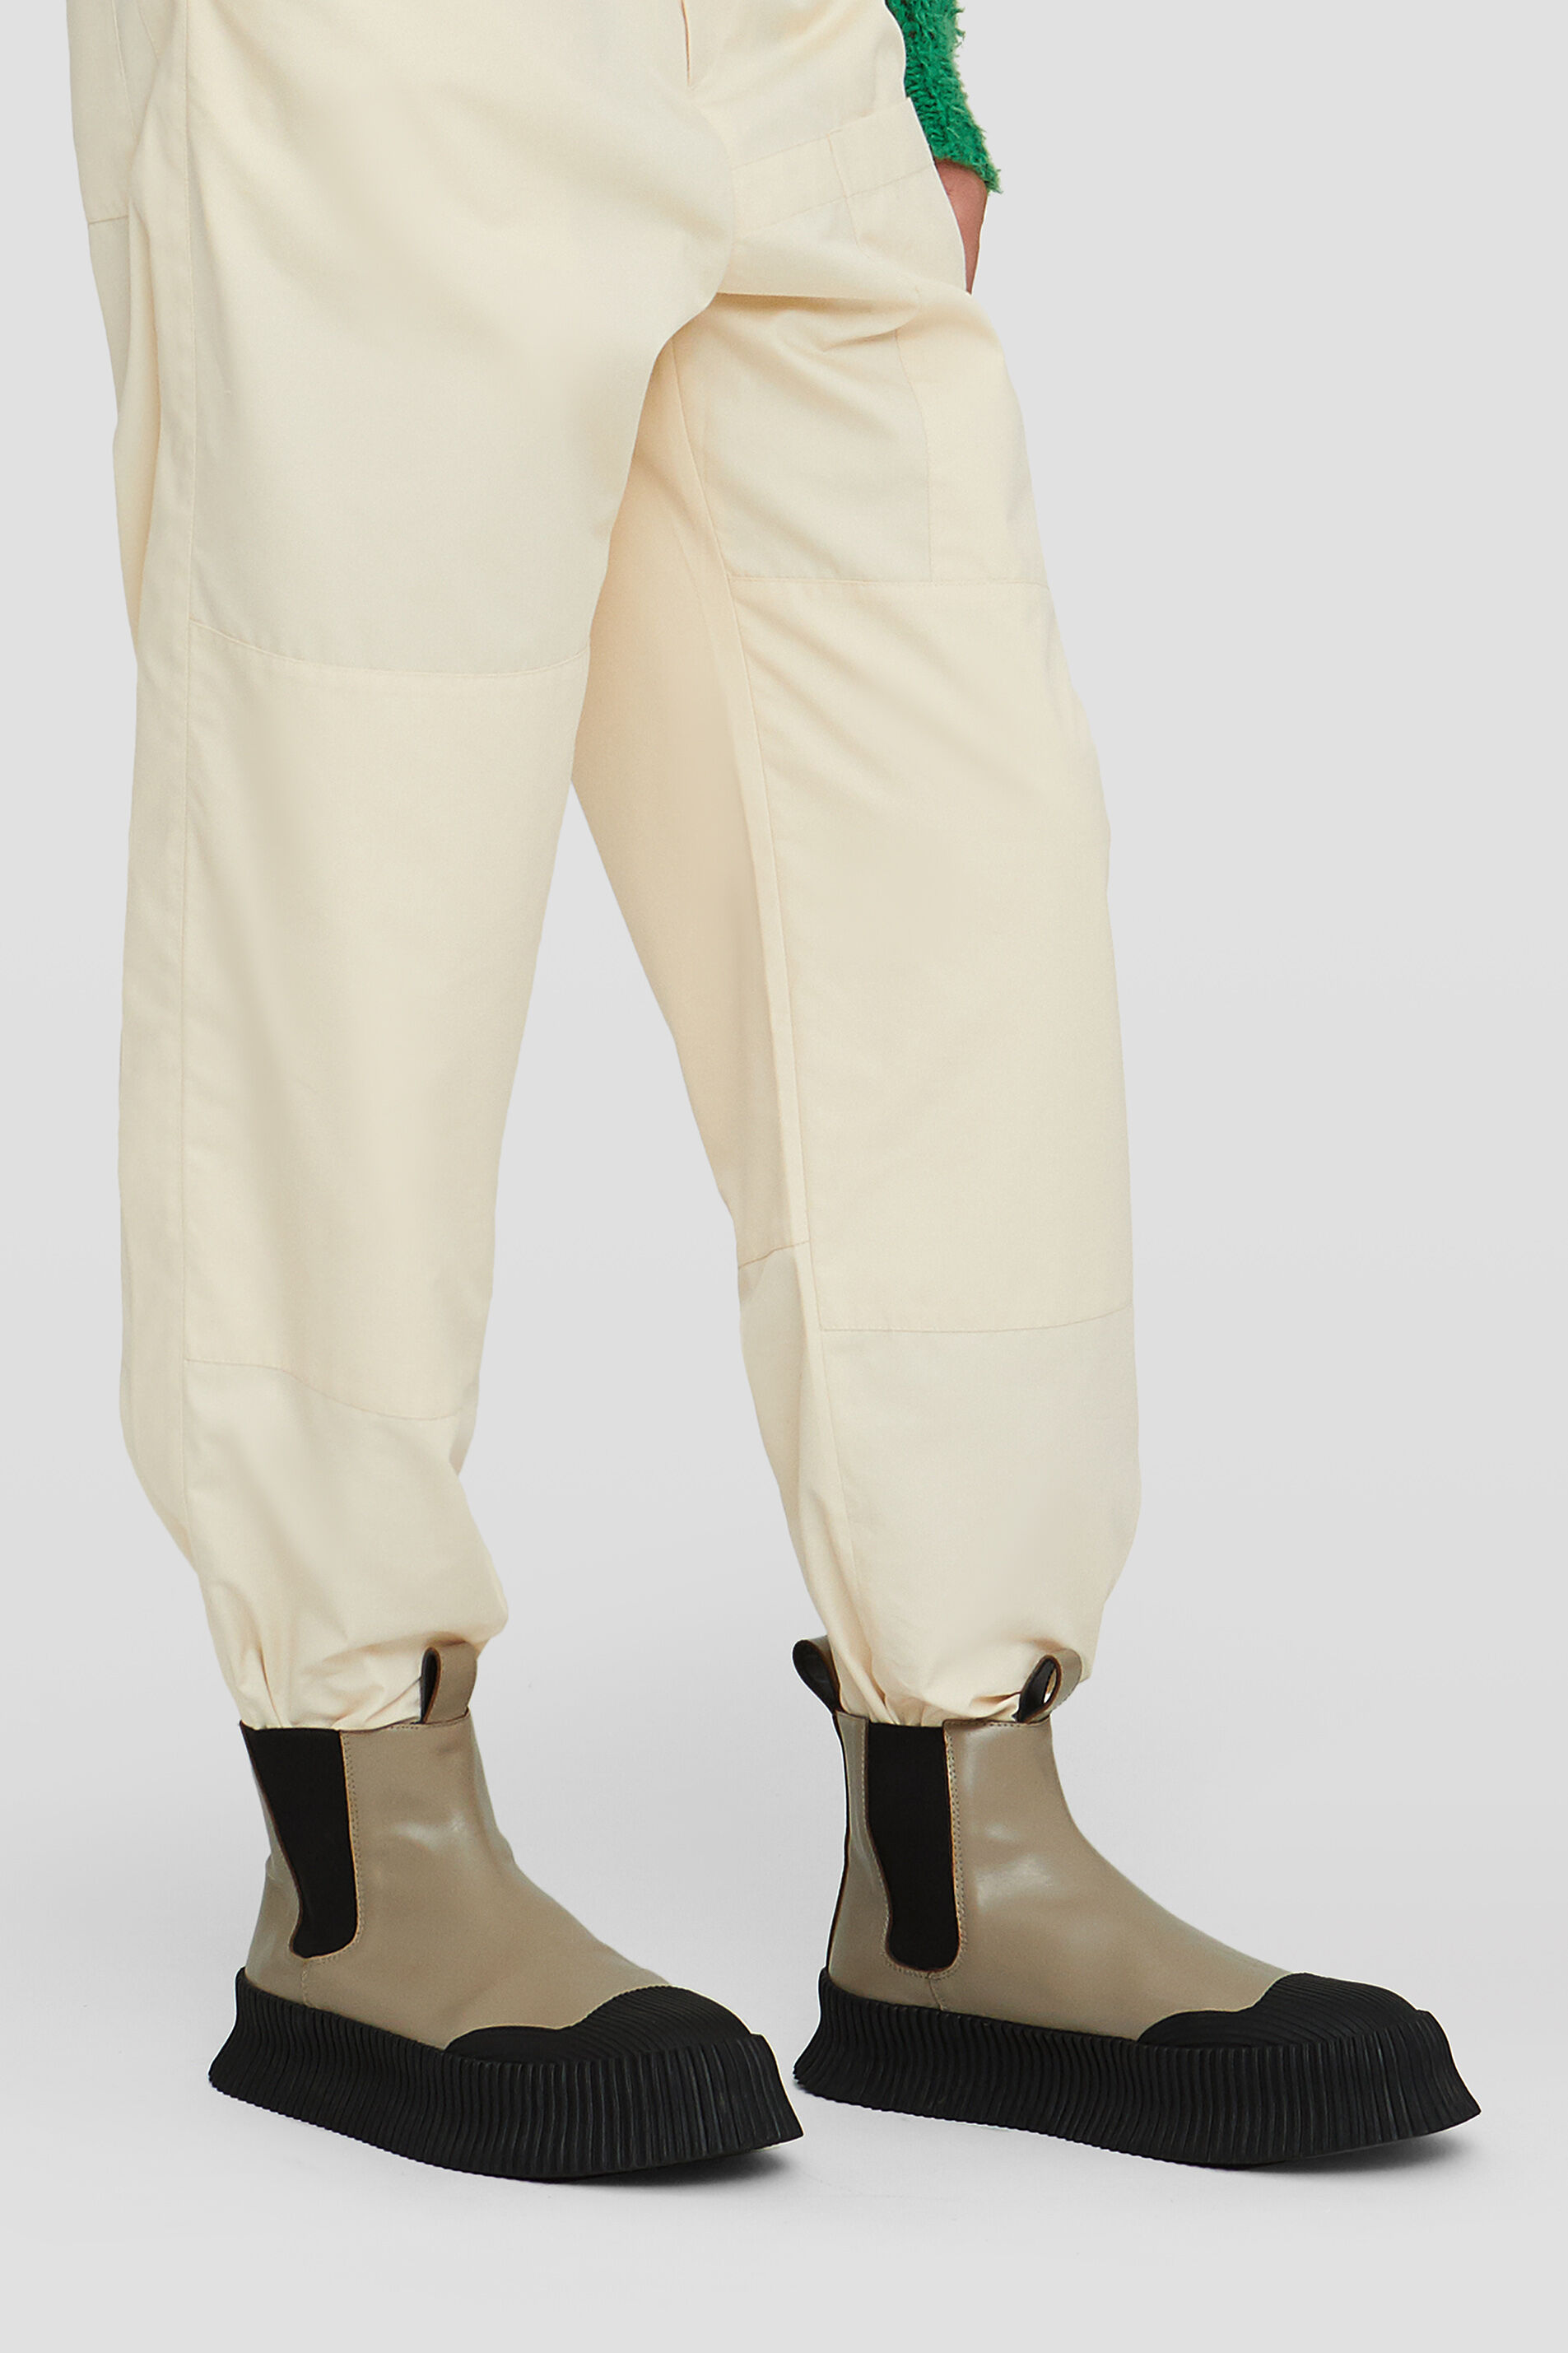 Boots, beige, large